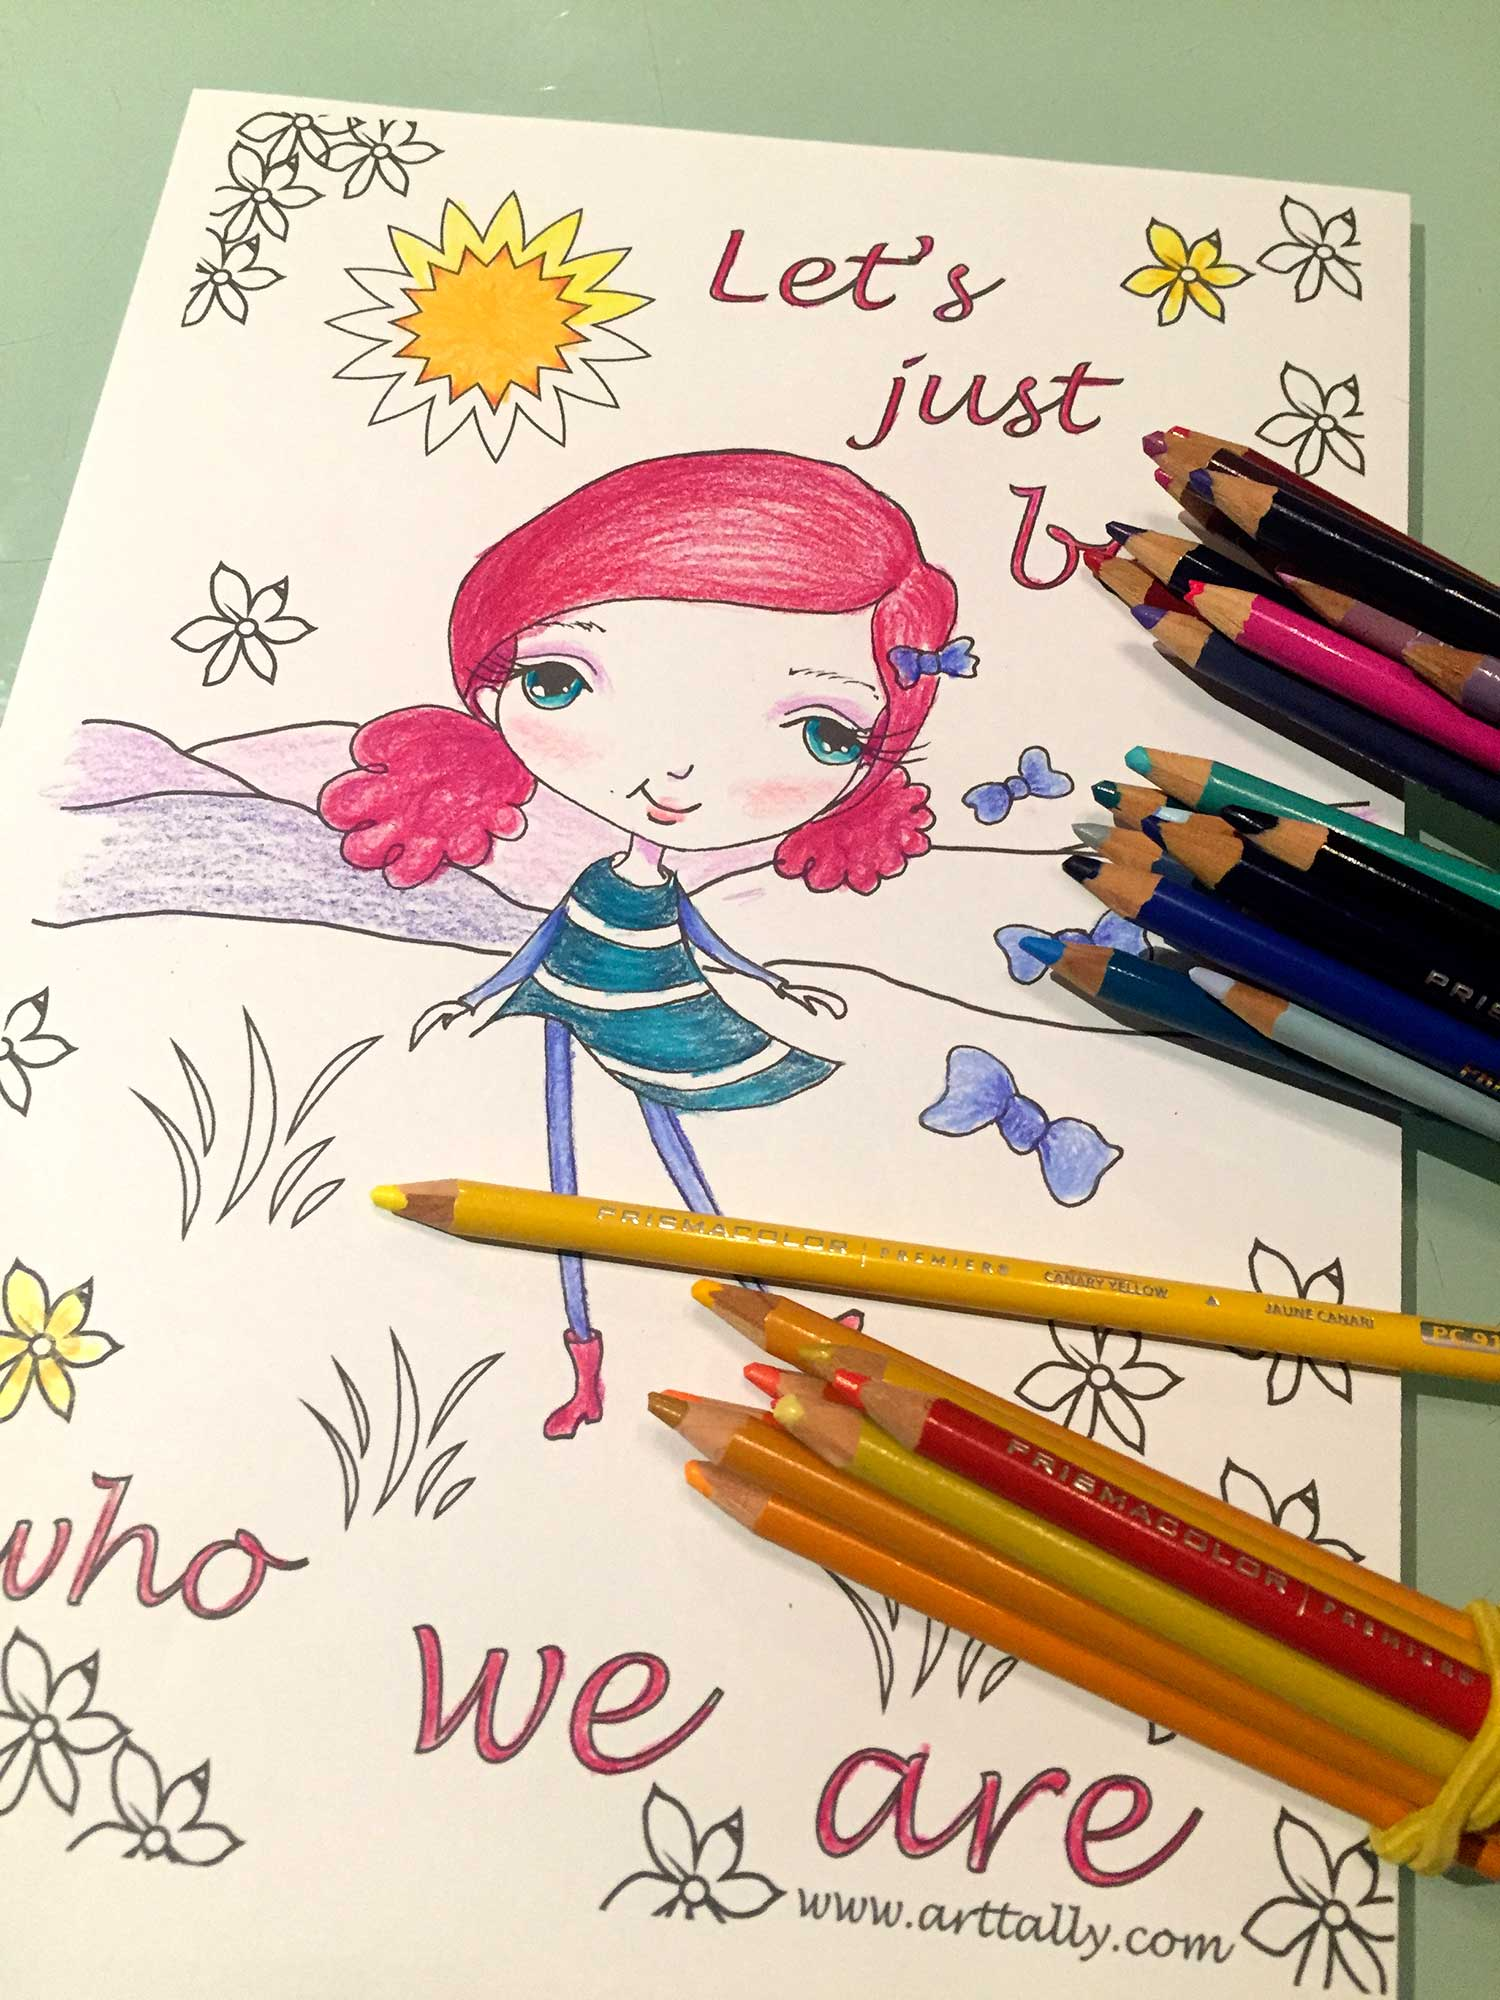 Get your free colouring sheet at kerriewoodhouse.com